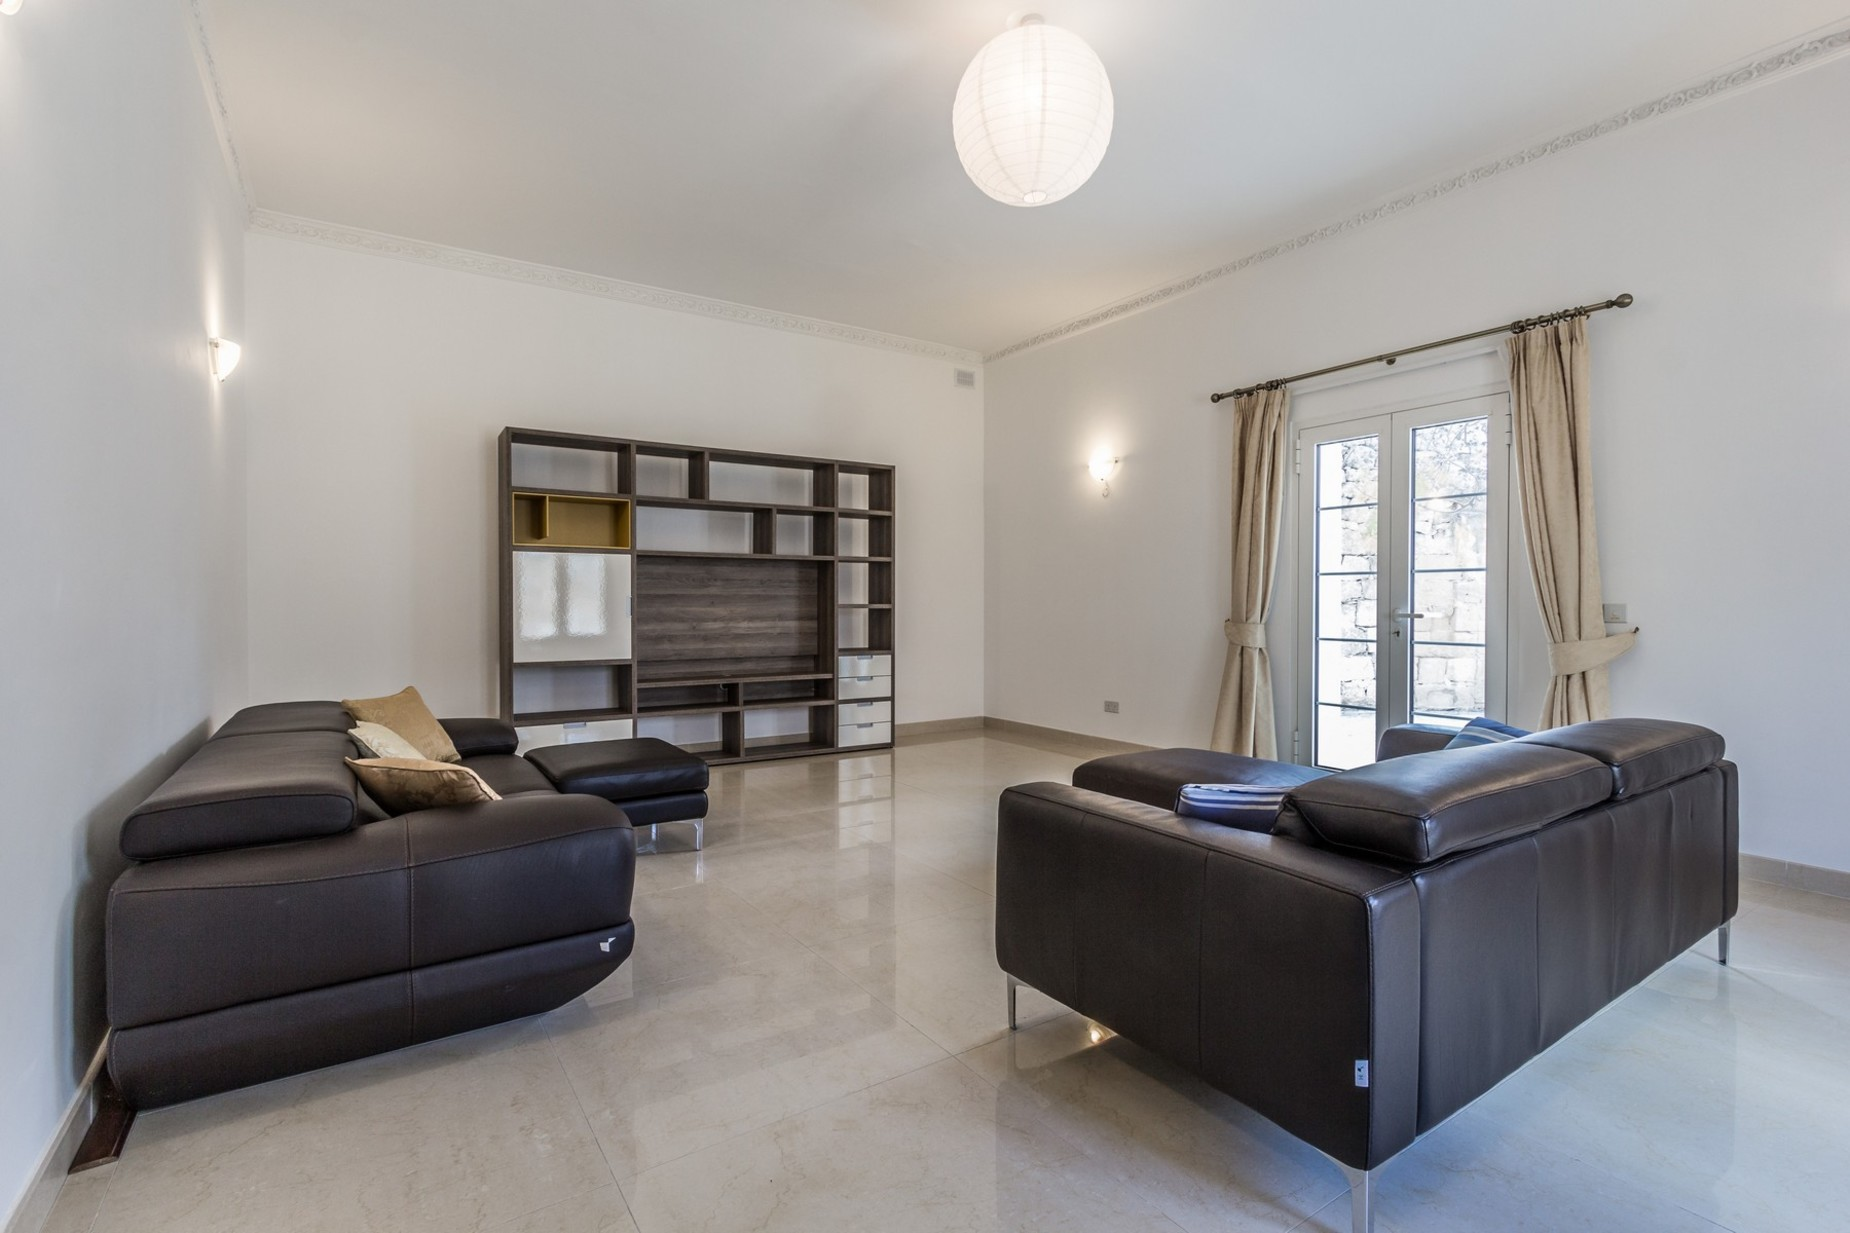 4 bed Villa For Sale in Mosta, Mosta - thumb 3